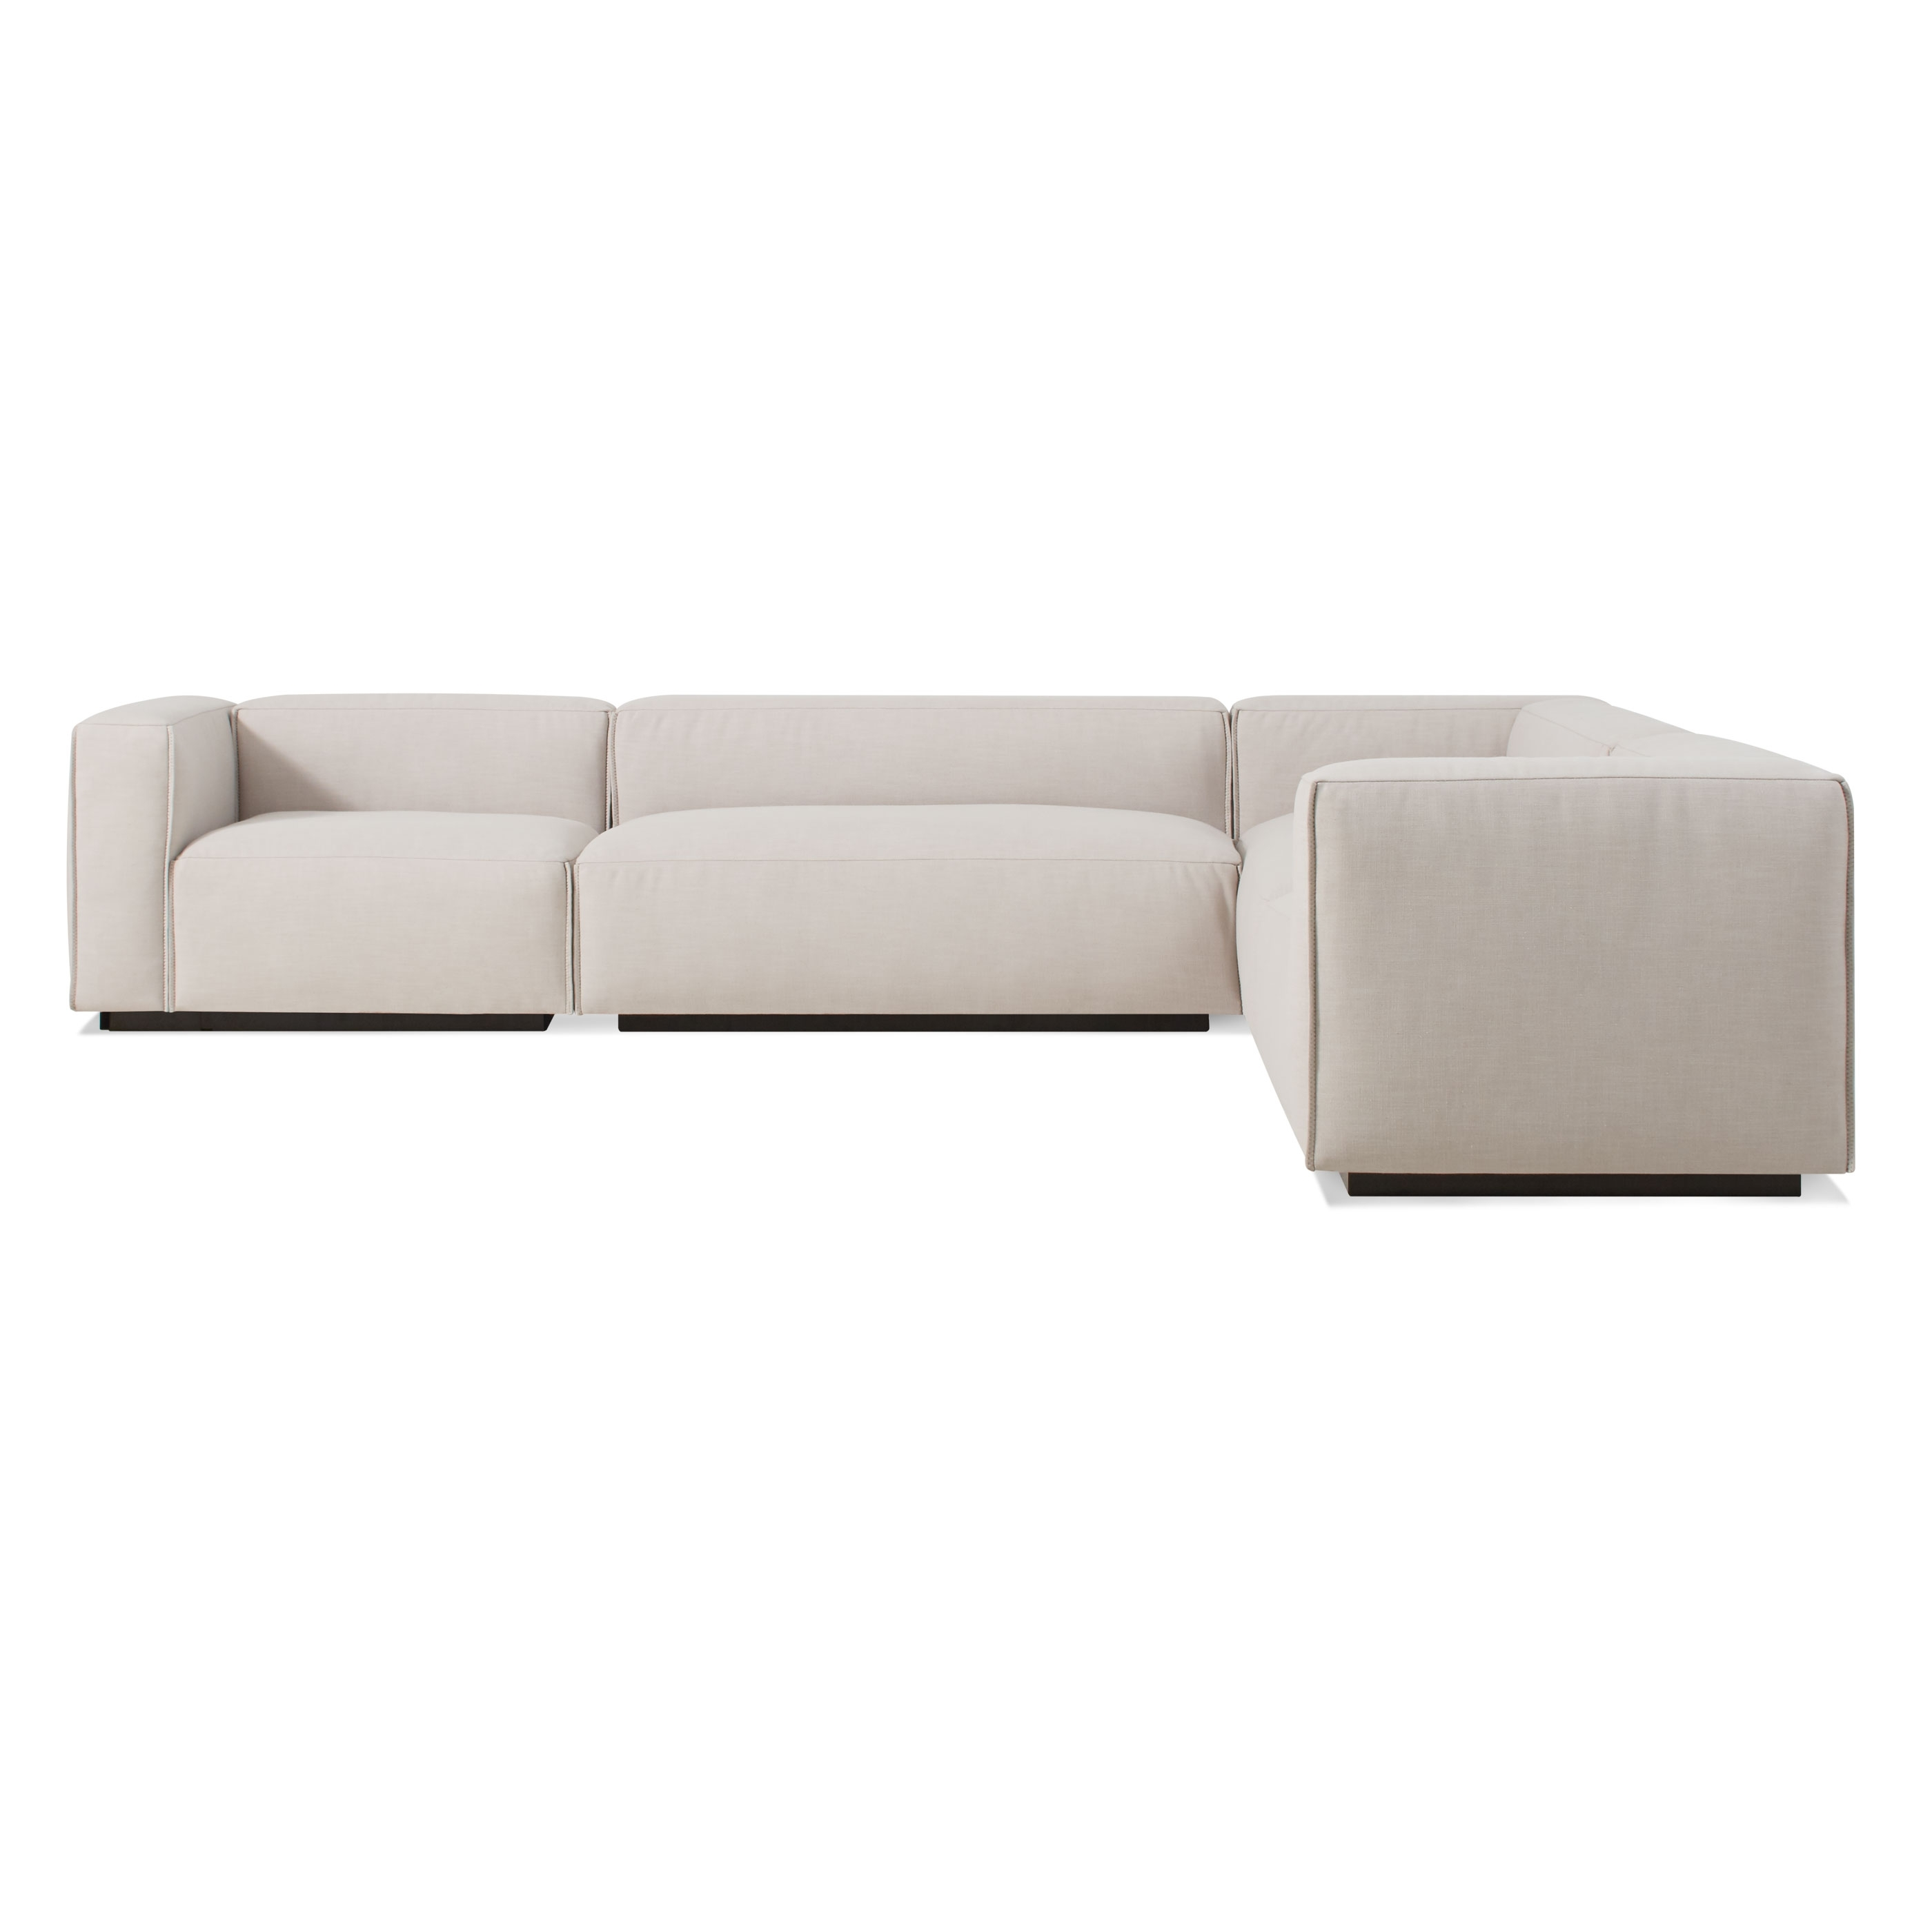 Blu Dot In Popular Hawaii Sectional Sofas (View 2 of 15)